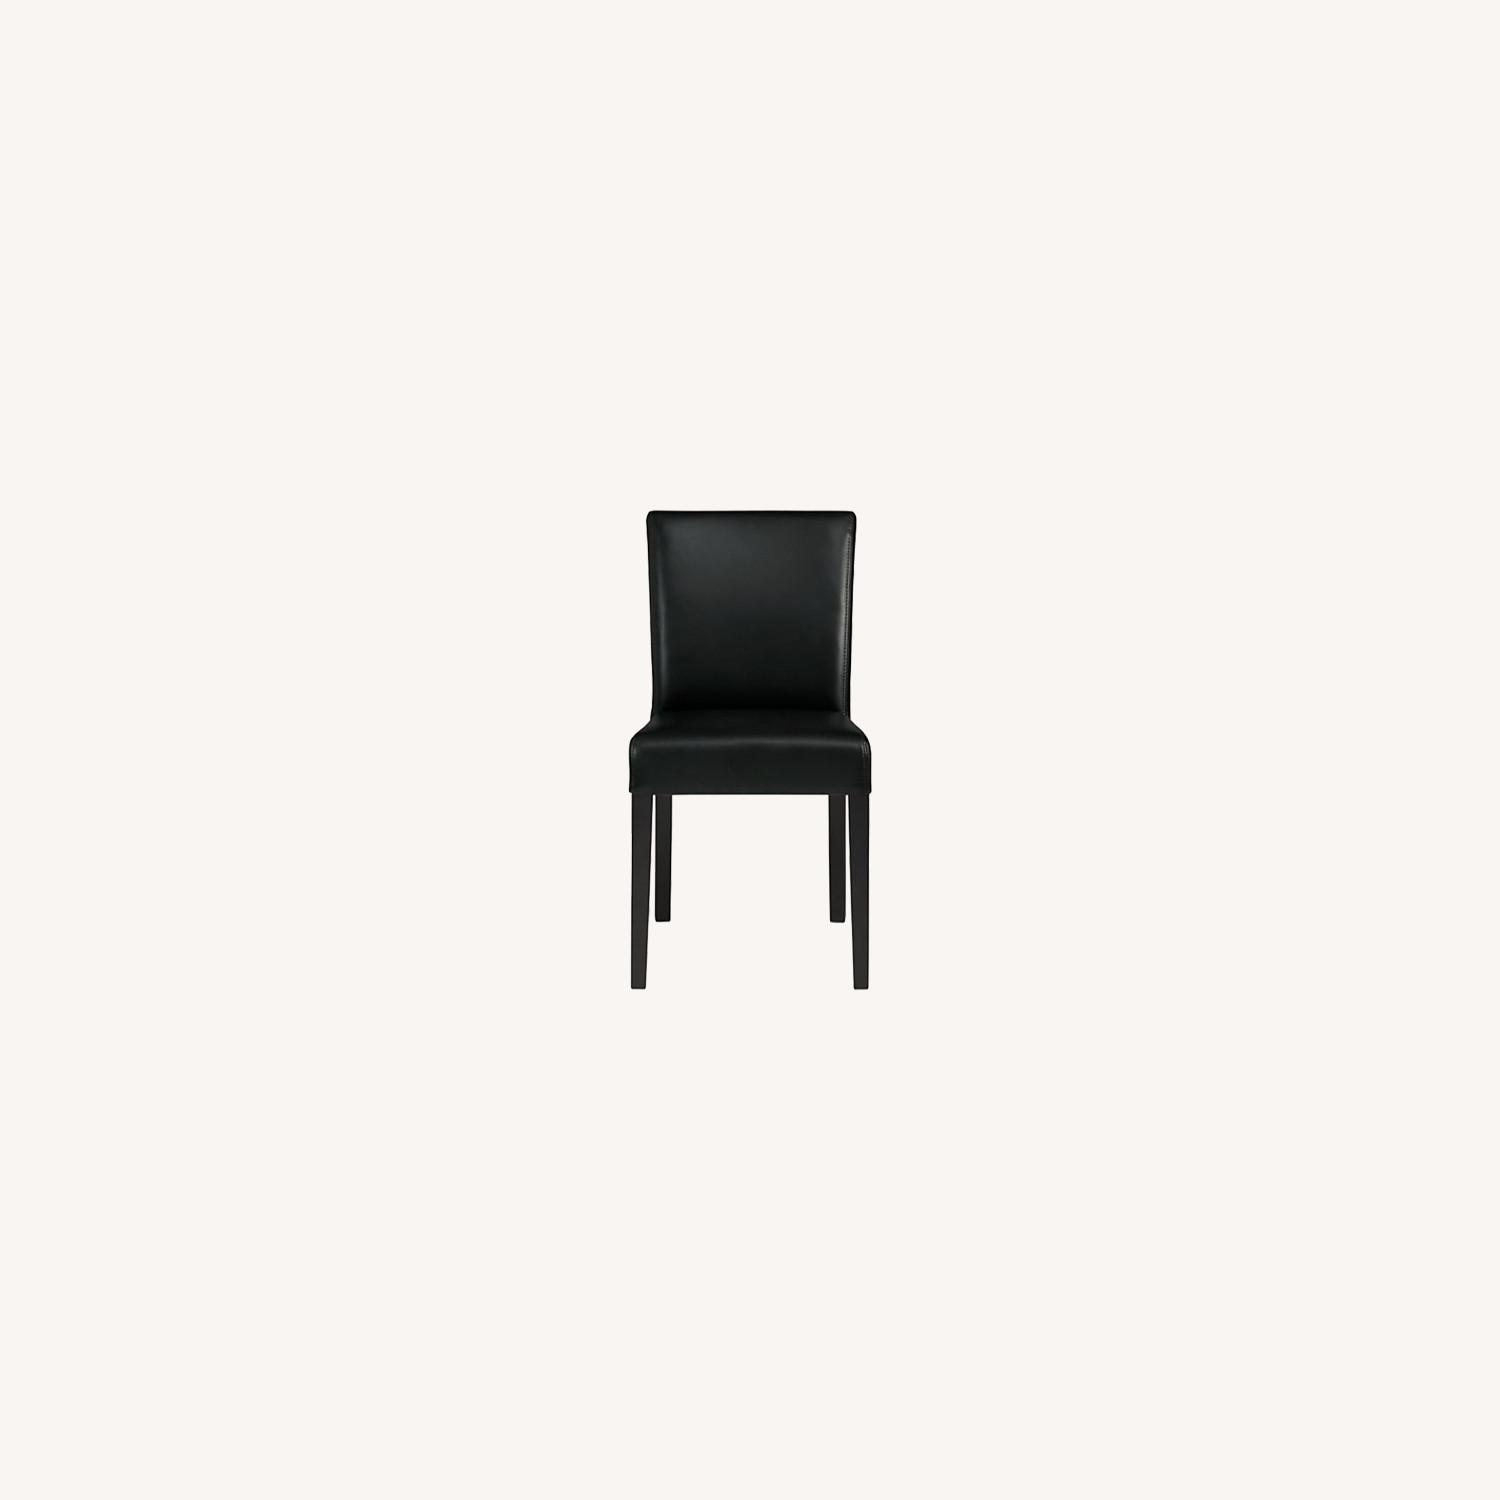 Crate & Barrel Lowe Leather Dining Chair - image-0